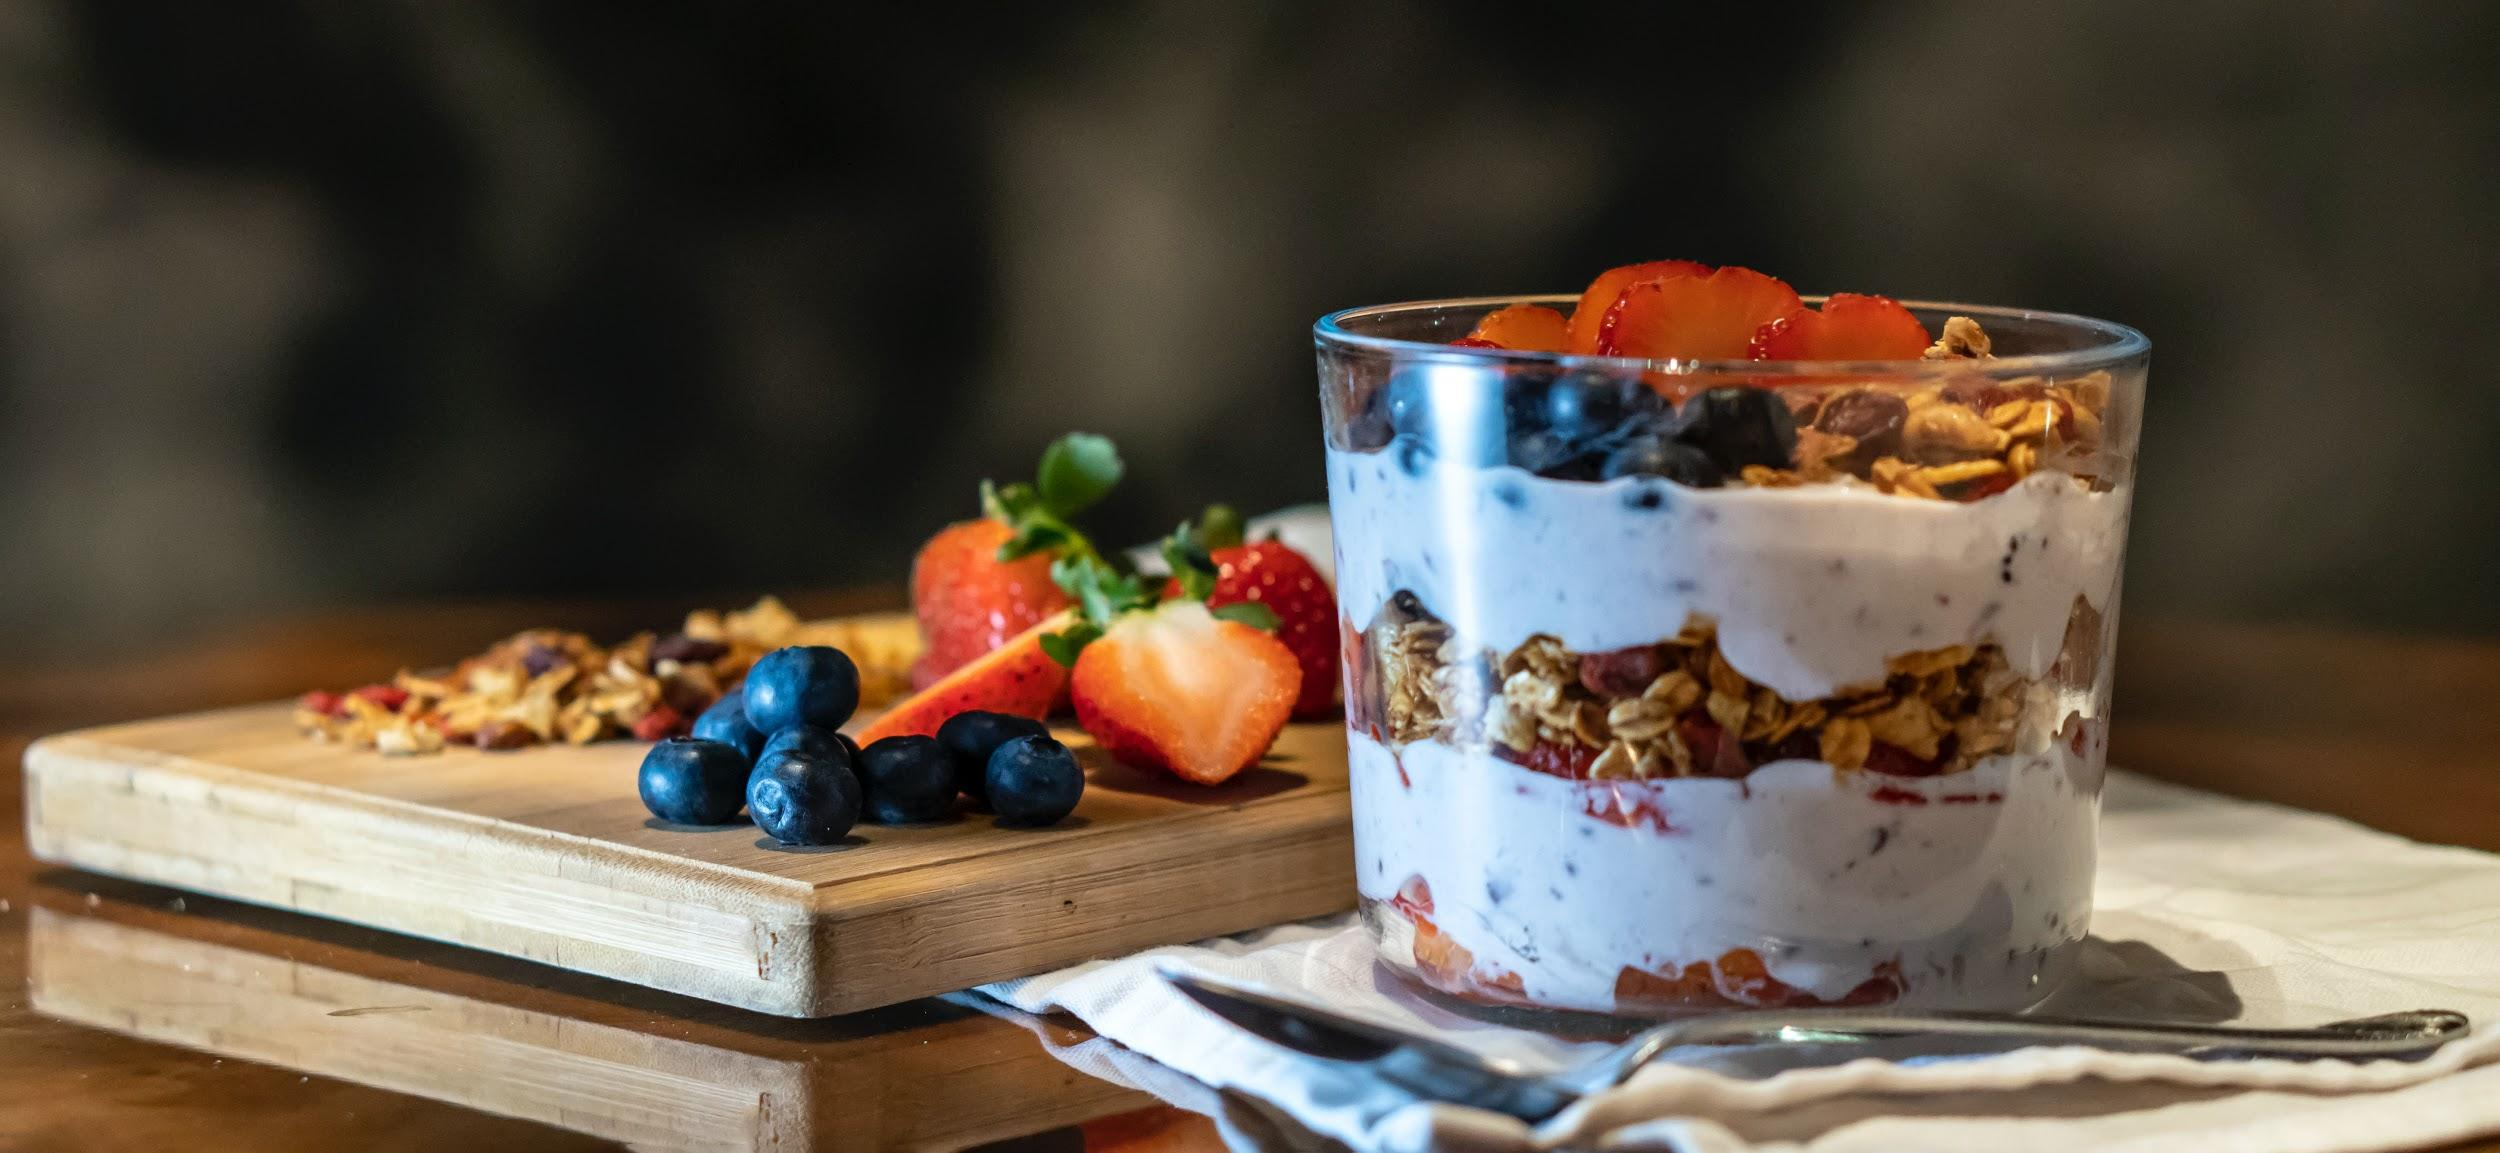 A cup of yogurt with granola and berries